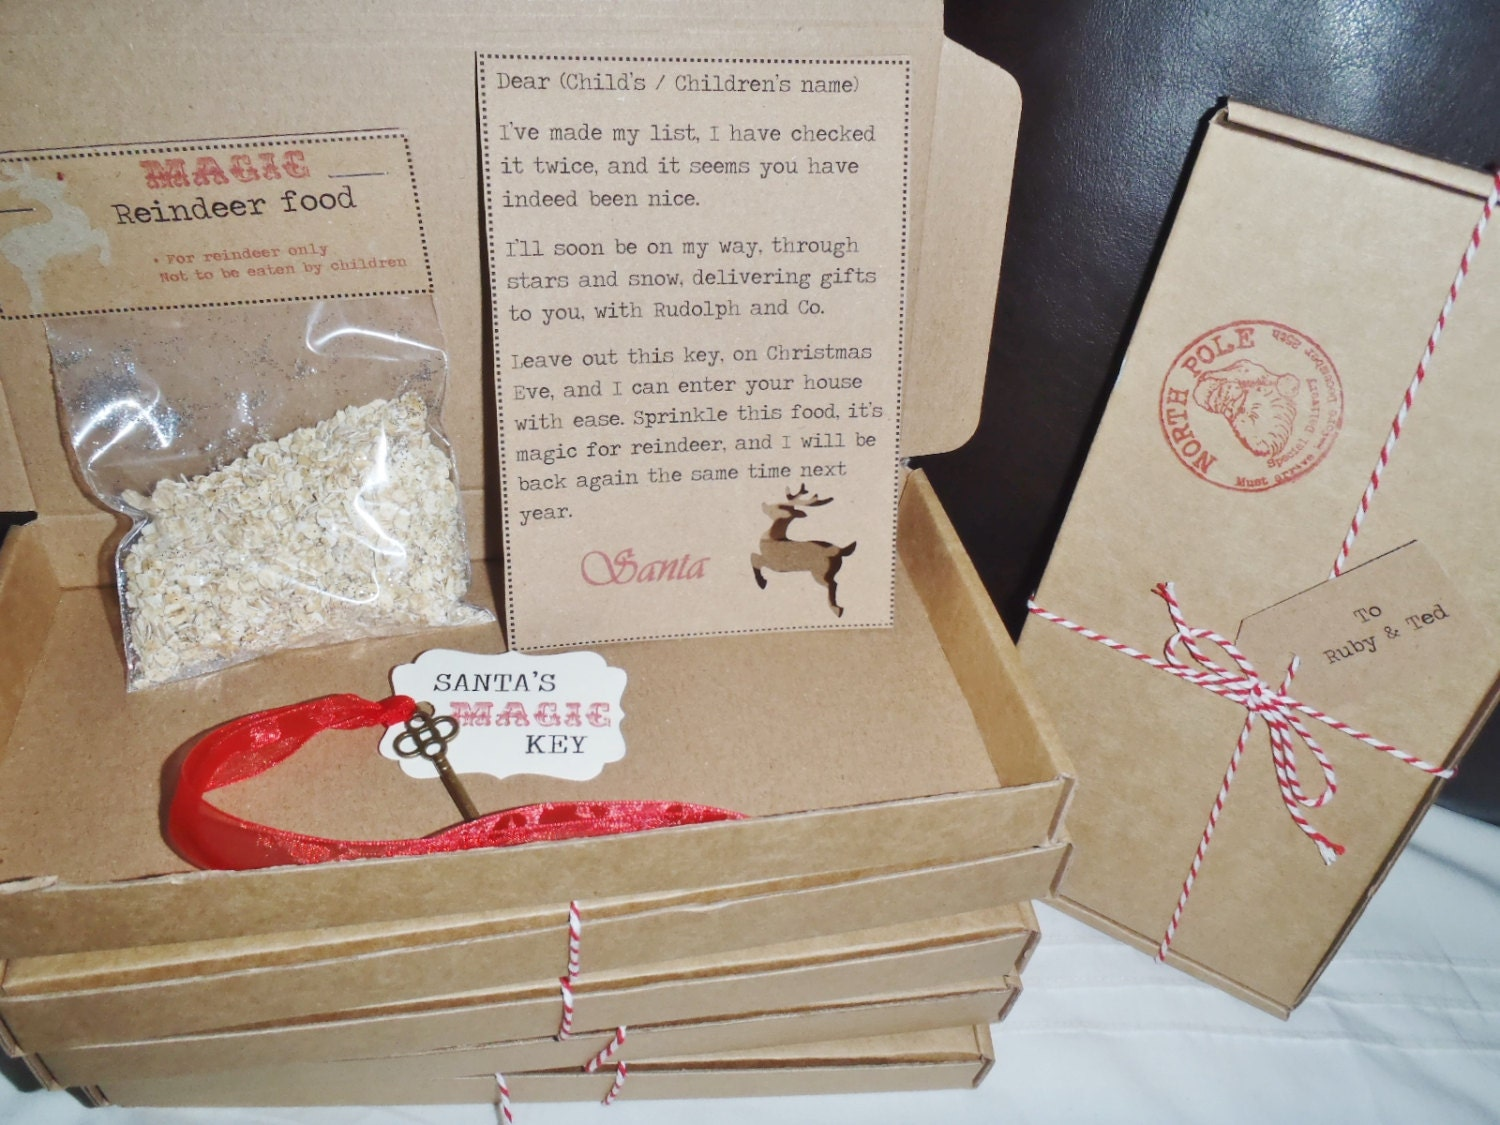 Personalized Letter From Santa With Reindeer Food  The Best Letter